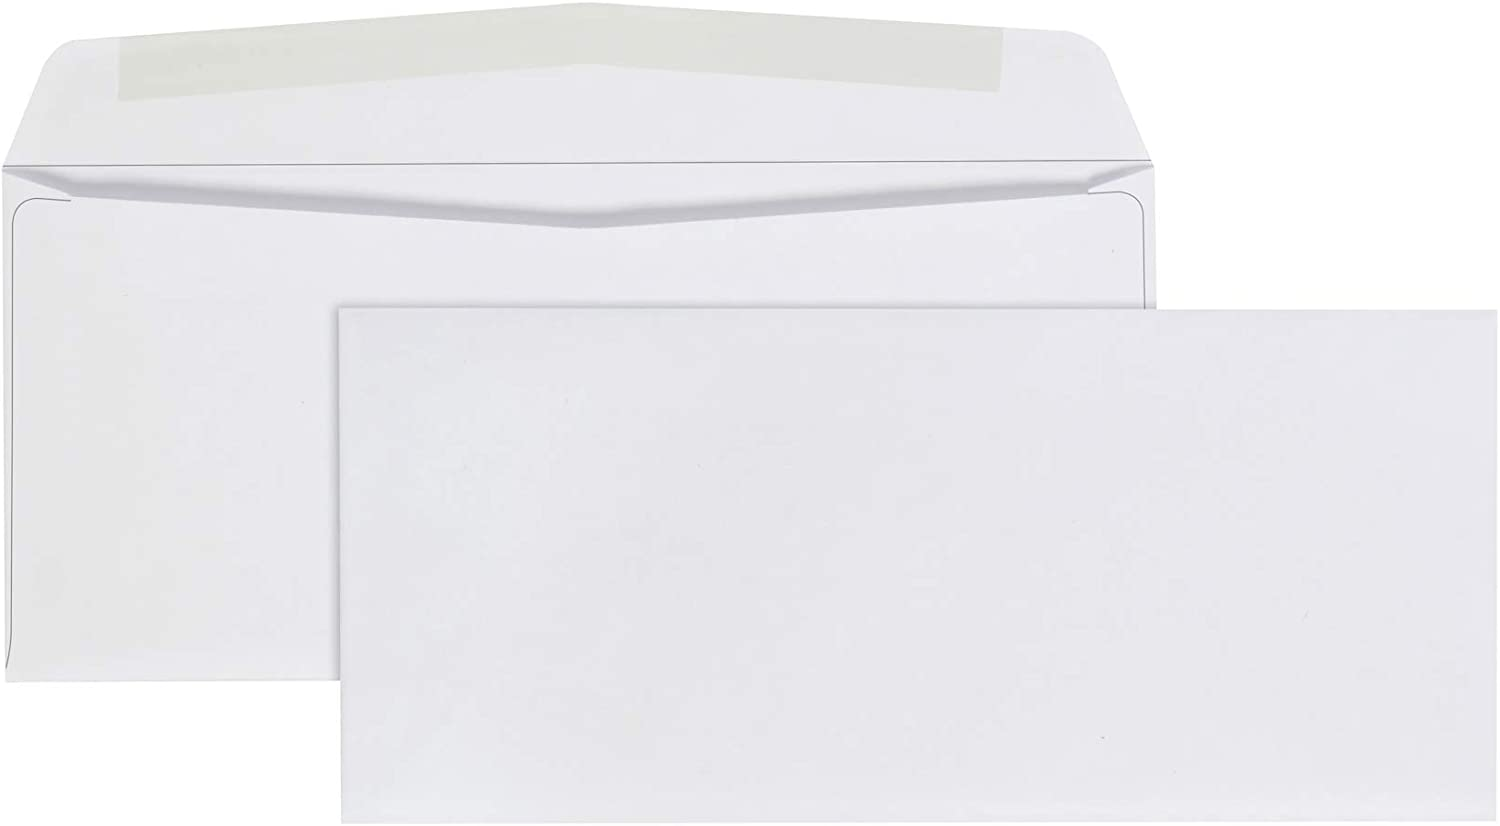 AmazonBasics #9 Envelopes with Gummed Seal, White, 500-Pack